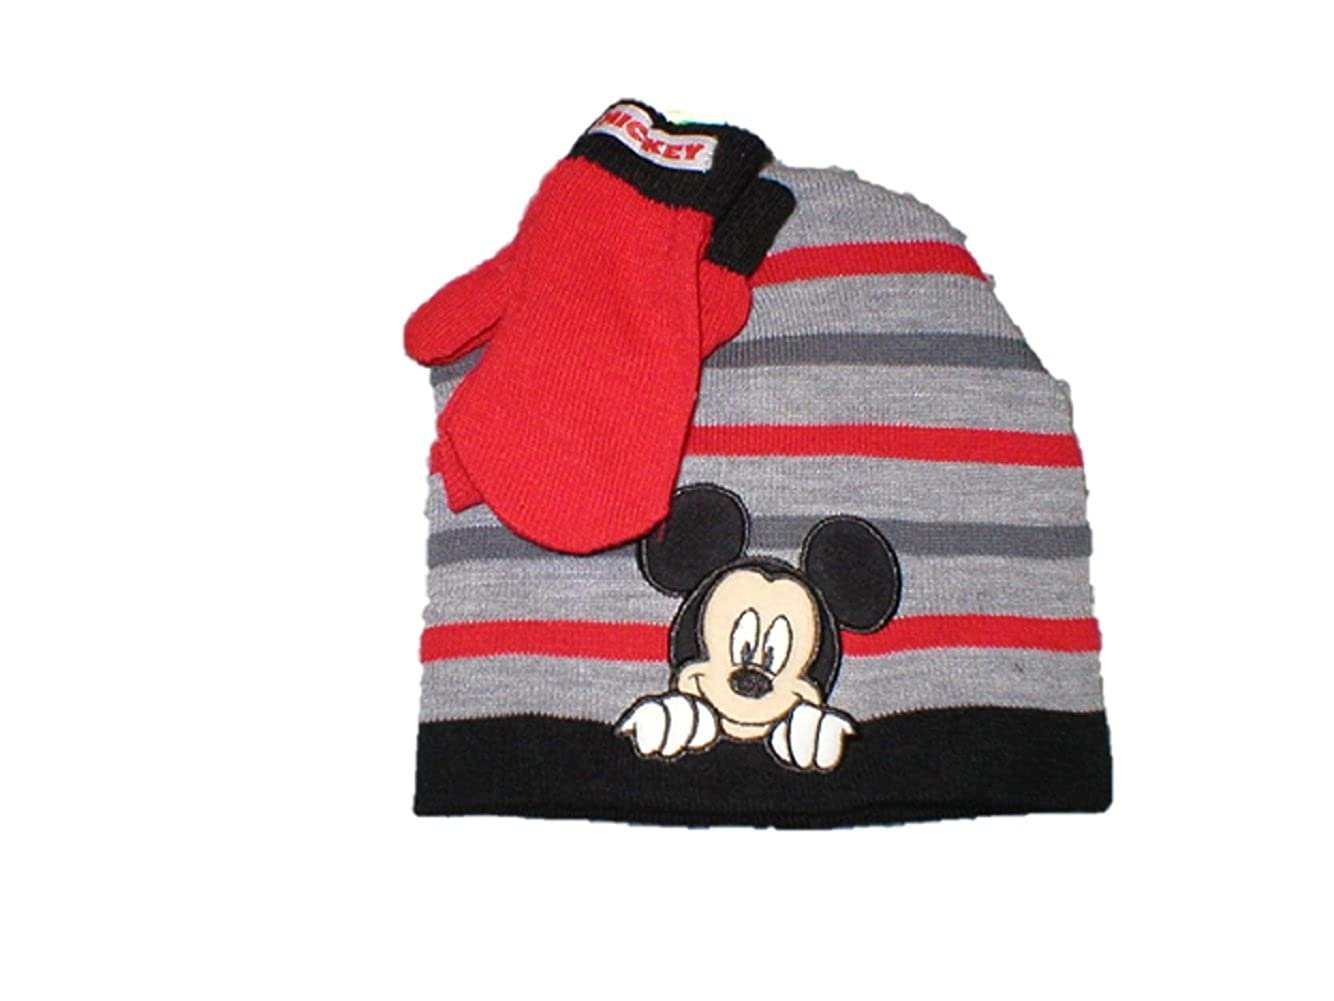 73dfee45fe6f2 ... best price amazon disney toddler mickey mouse hat and mittens clothing  7448e efb0c